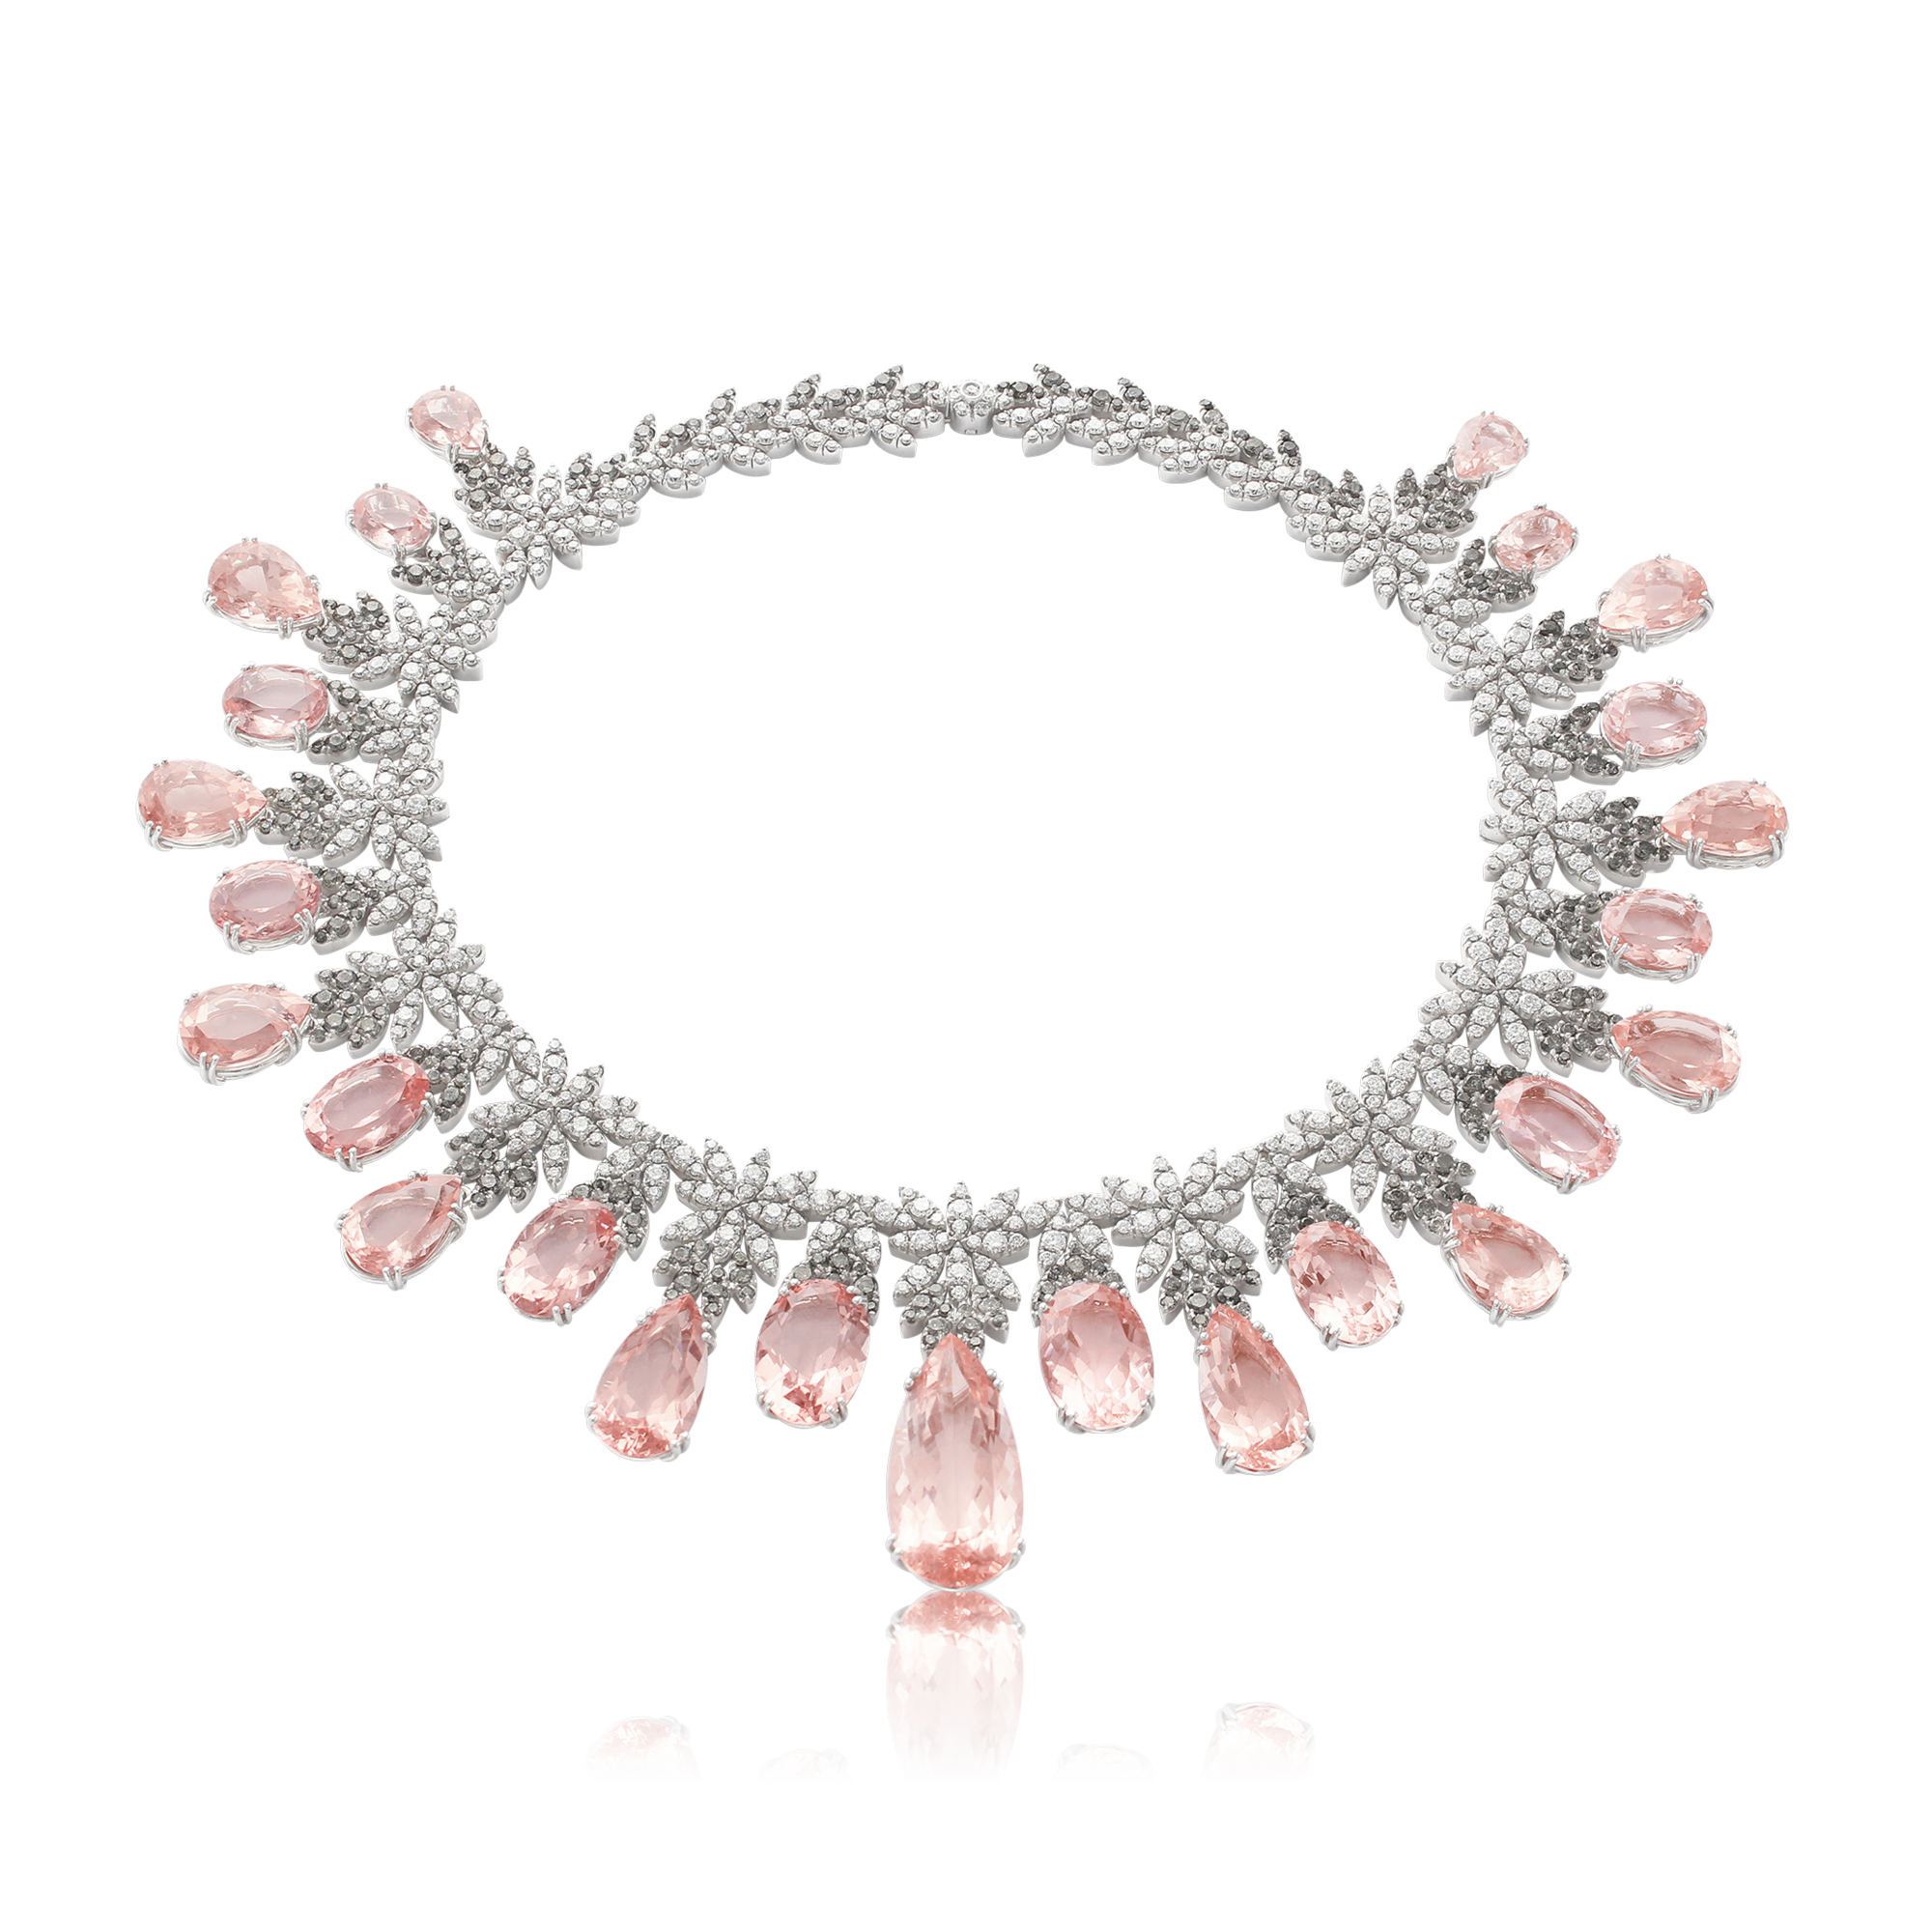 18k White Gold Ghirlanda Atelier Necklace with Morganite, White and Grey Diamonds